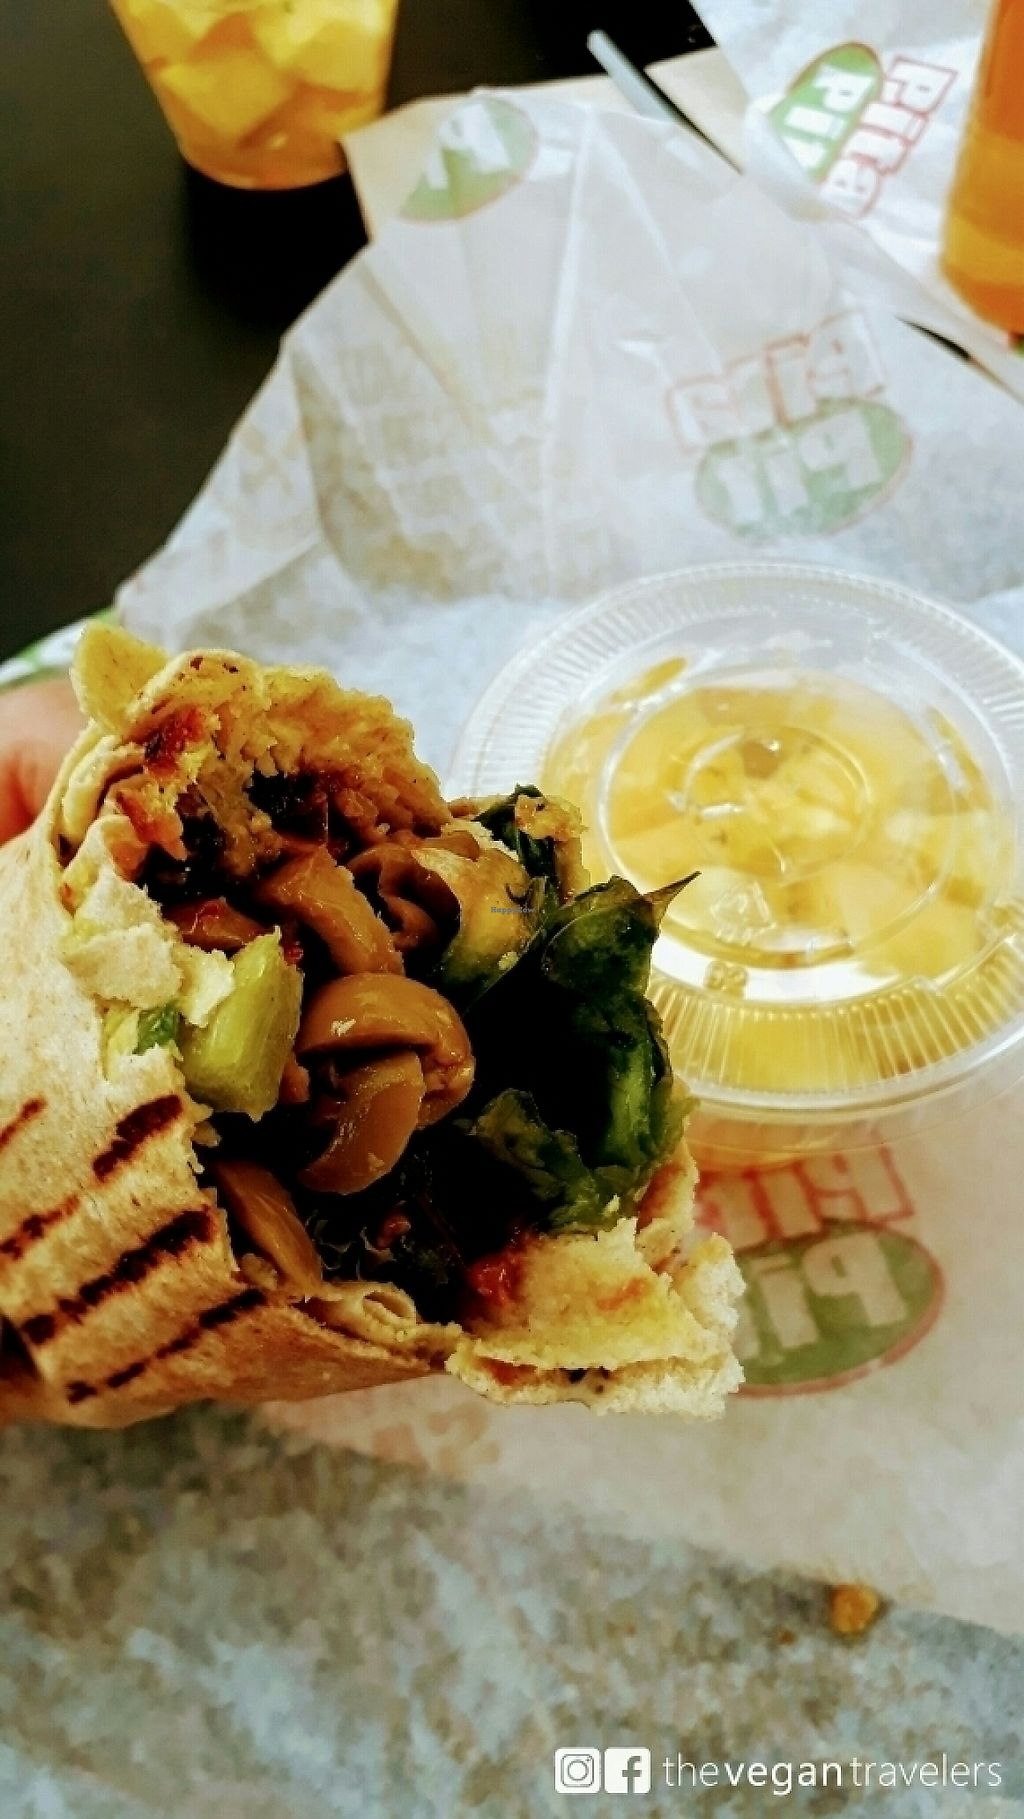 """Photo of Pita Pit  by <a href=""""/members/profile/thevegantravelers"""">thevegantravelers</a> <br/>Pita Pit <br/> May 31, 2017  - <a href='/contact/abuse/image/74531/264450'>Report</a>"""